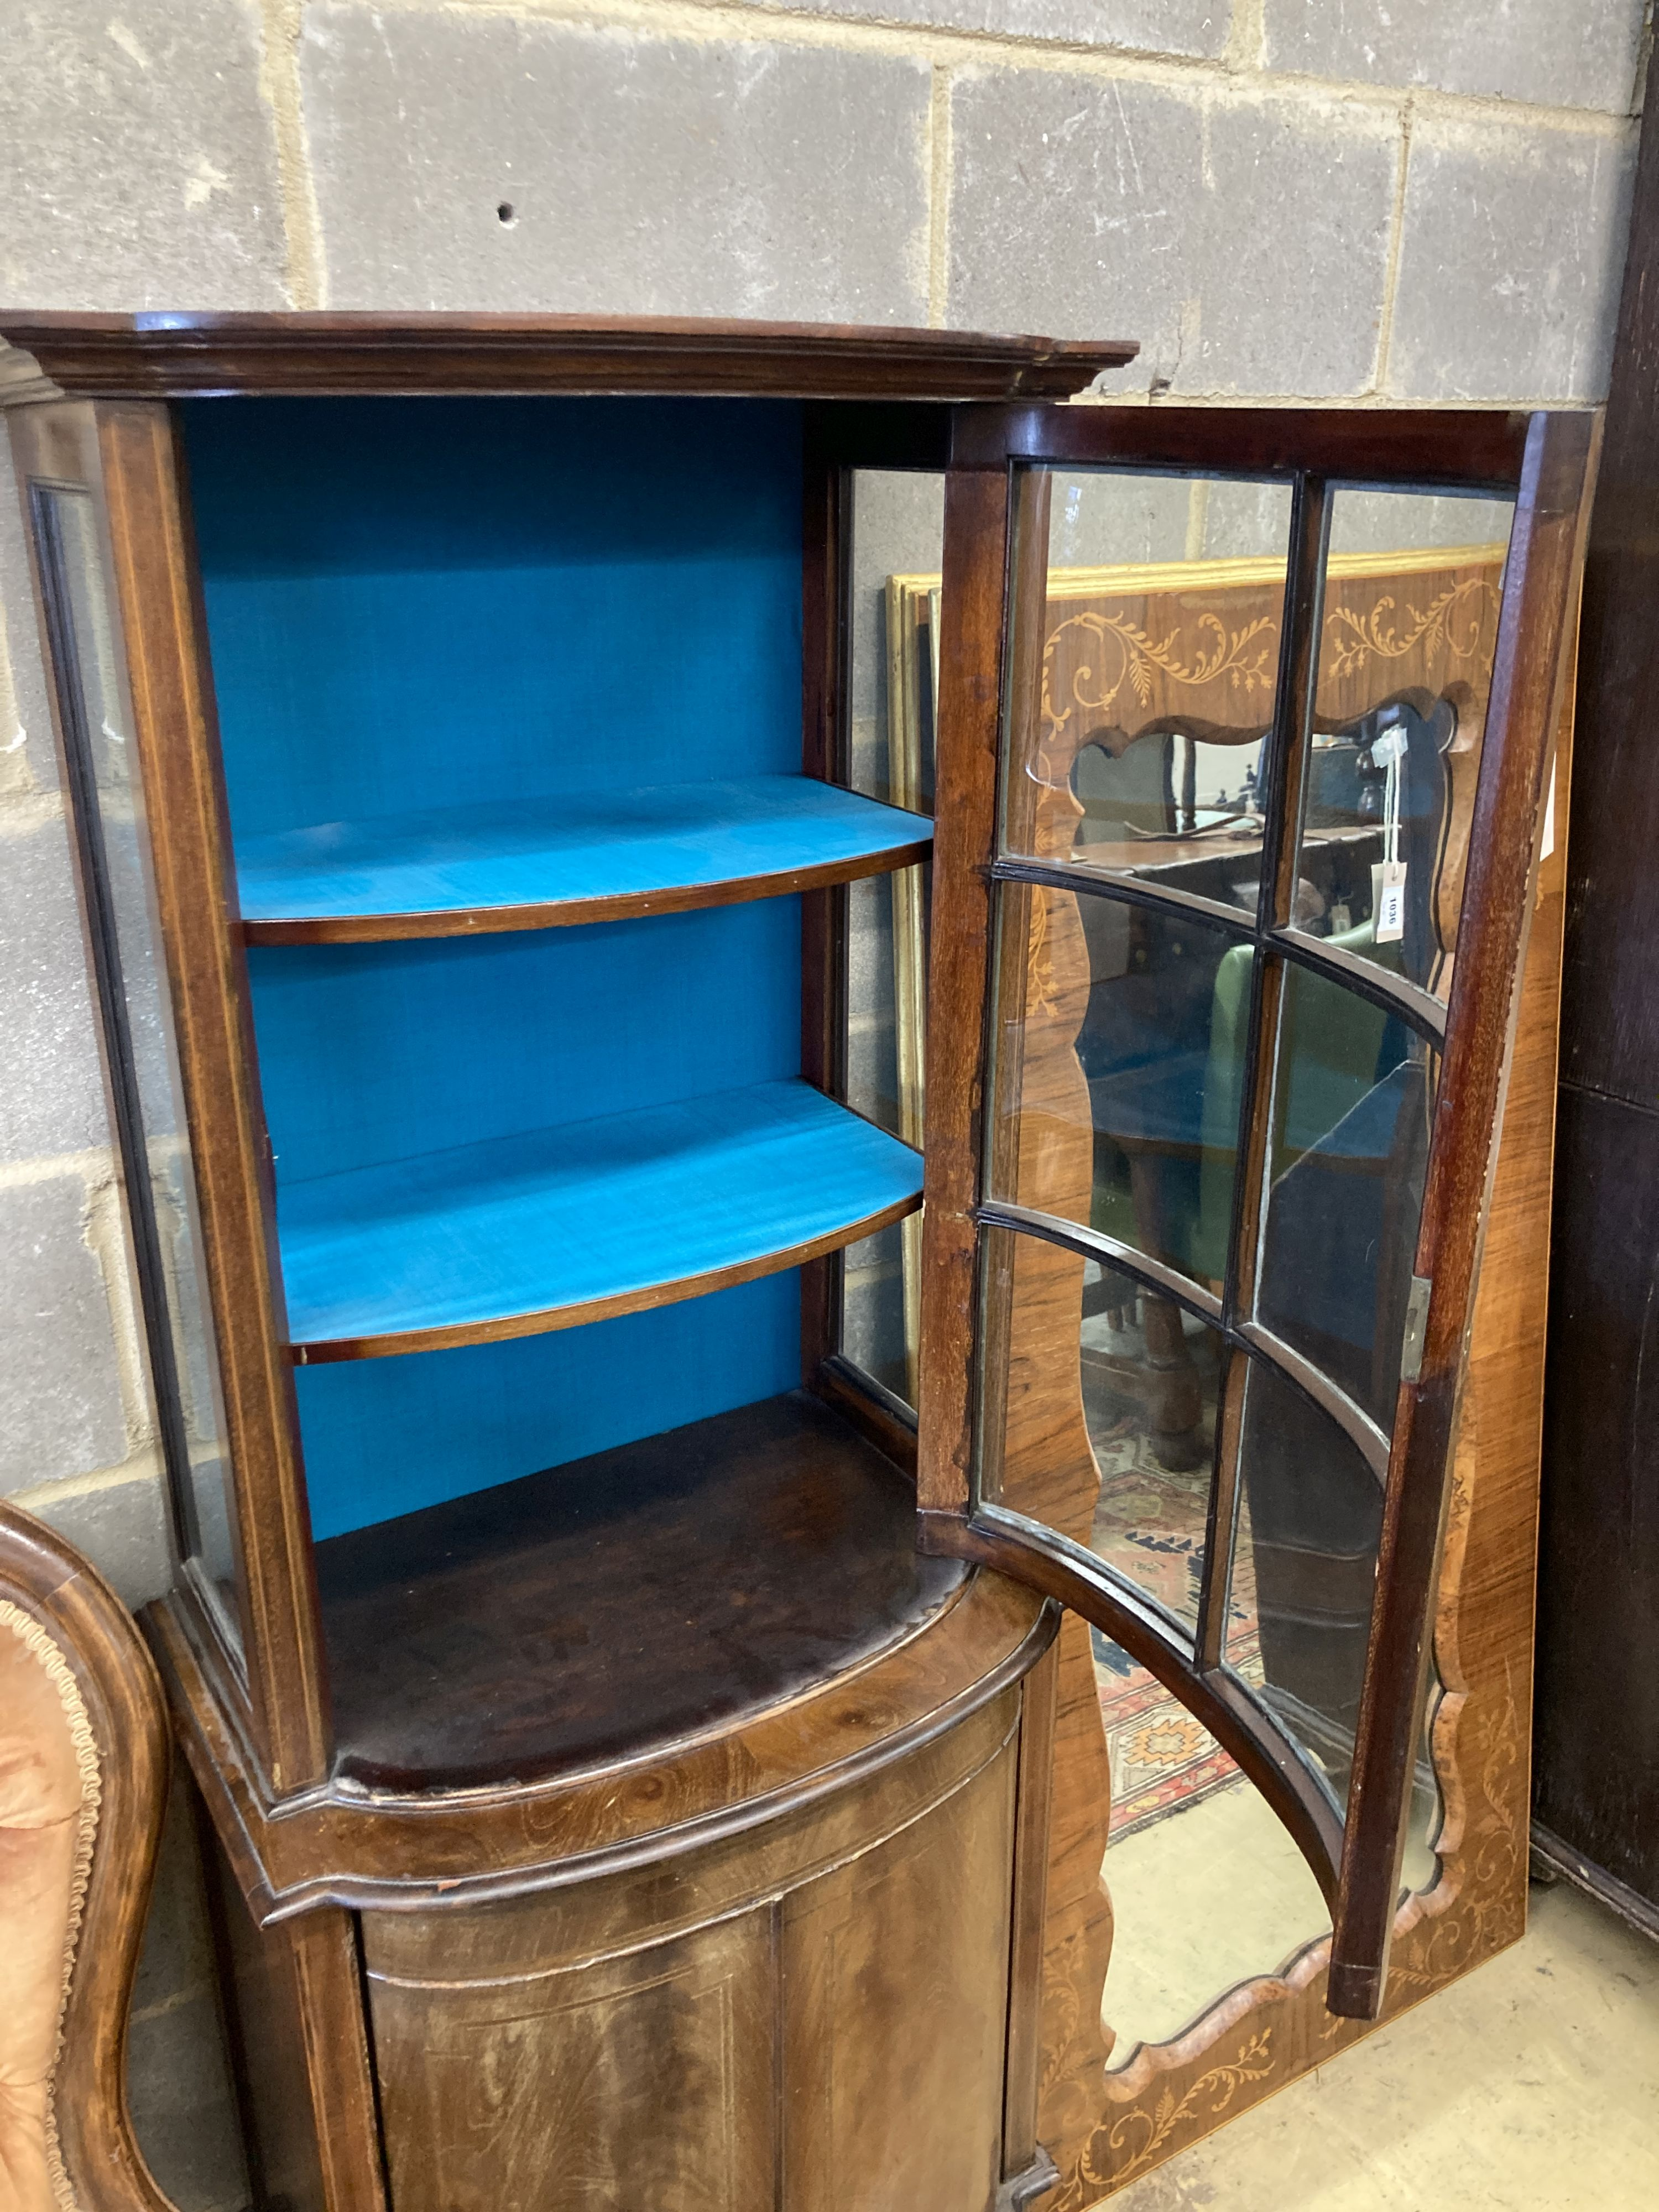 An Edwardian mahogany bowfront narrow display cabinet, width 60cm, depth 36cm, height 164cm - Image 2 of 4